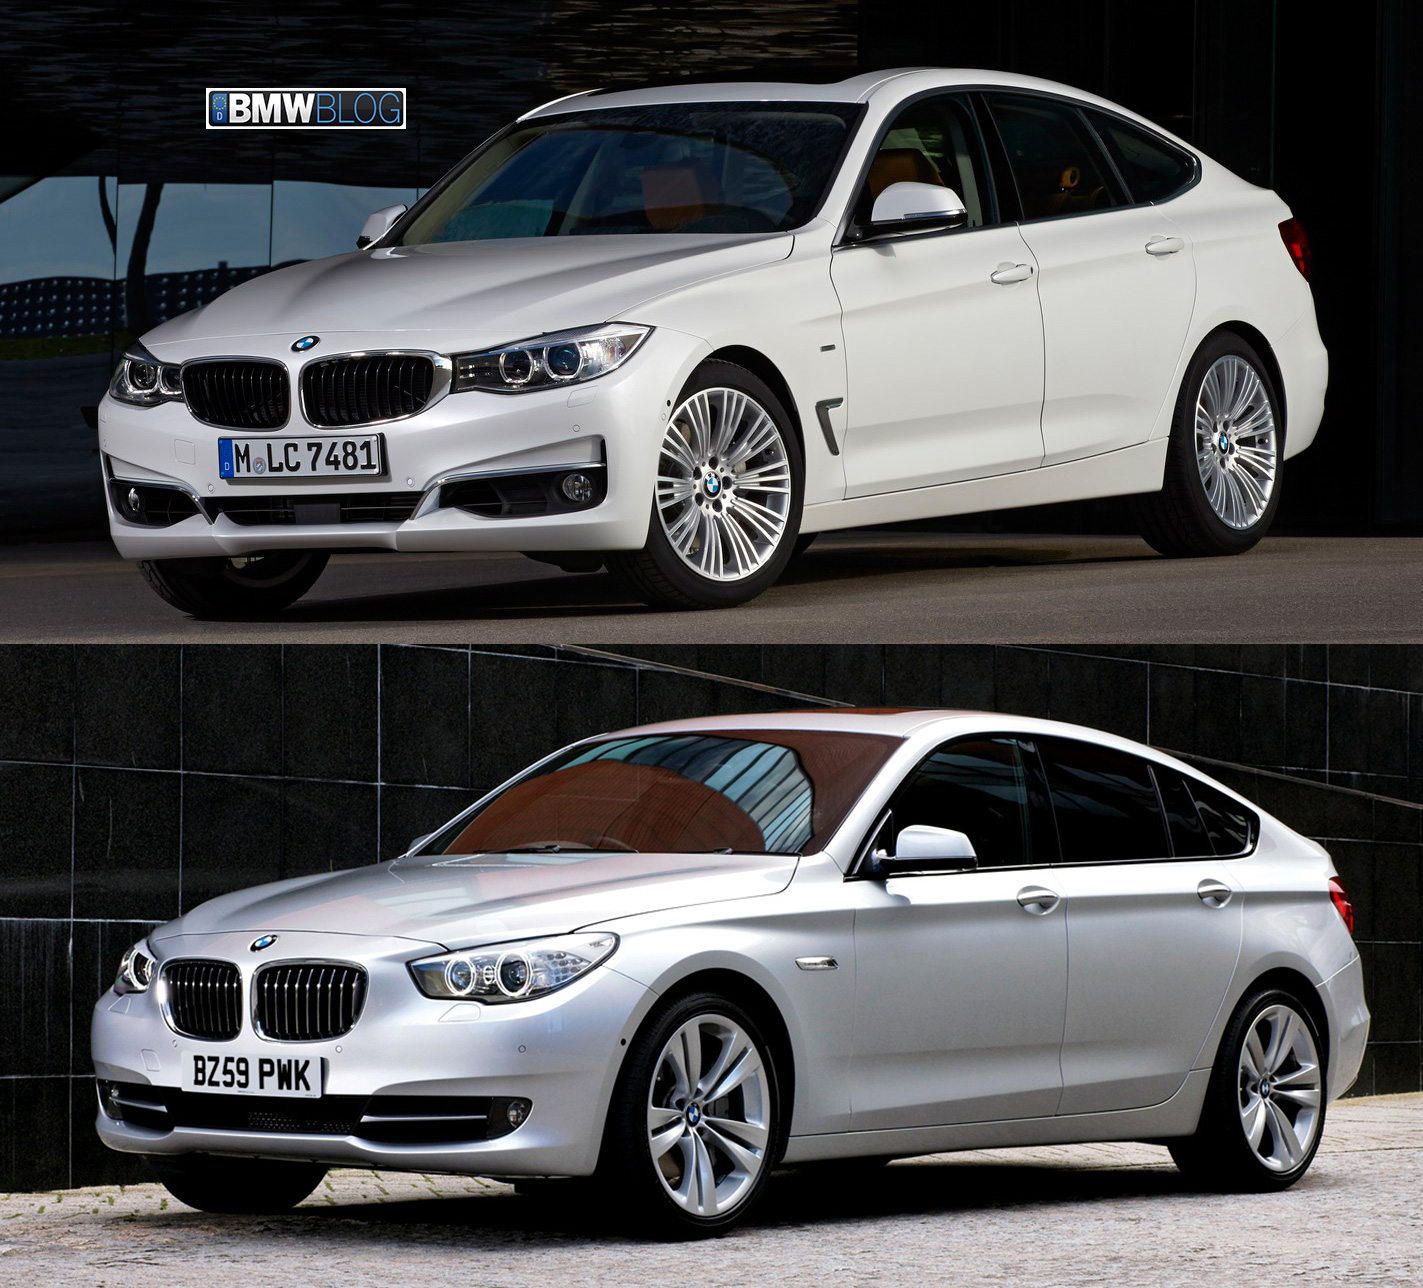 Bmw 328i: What Would You Drive Beside A BMW?